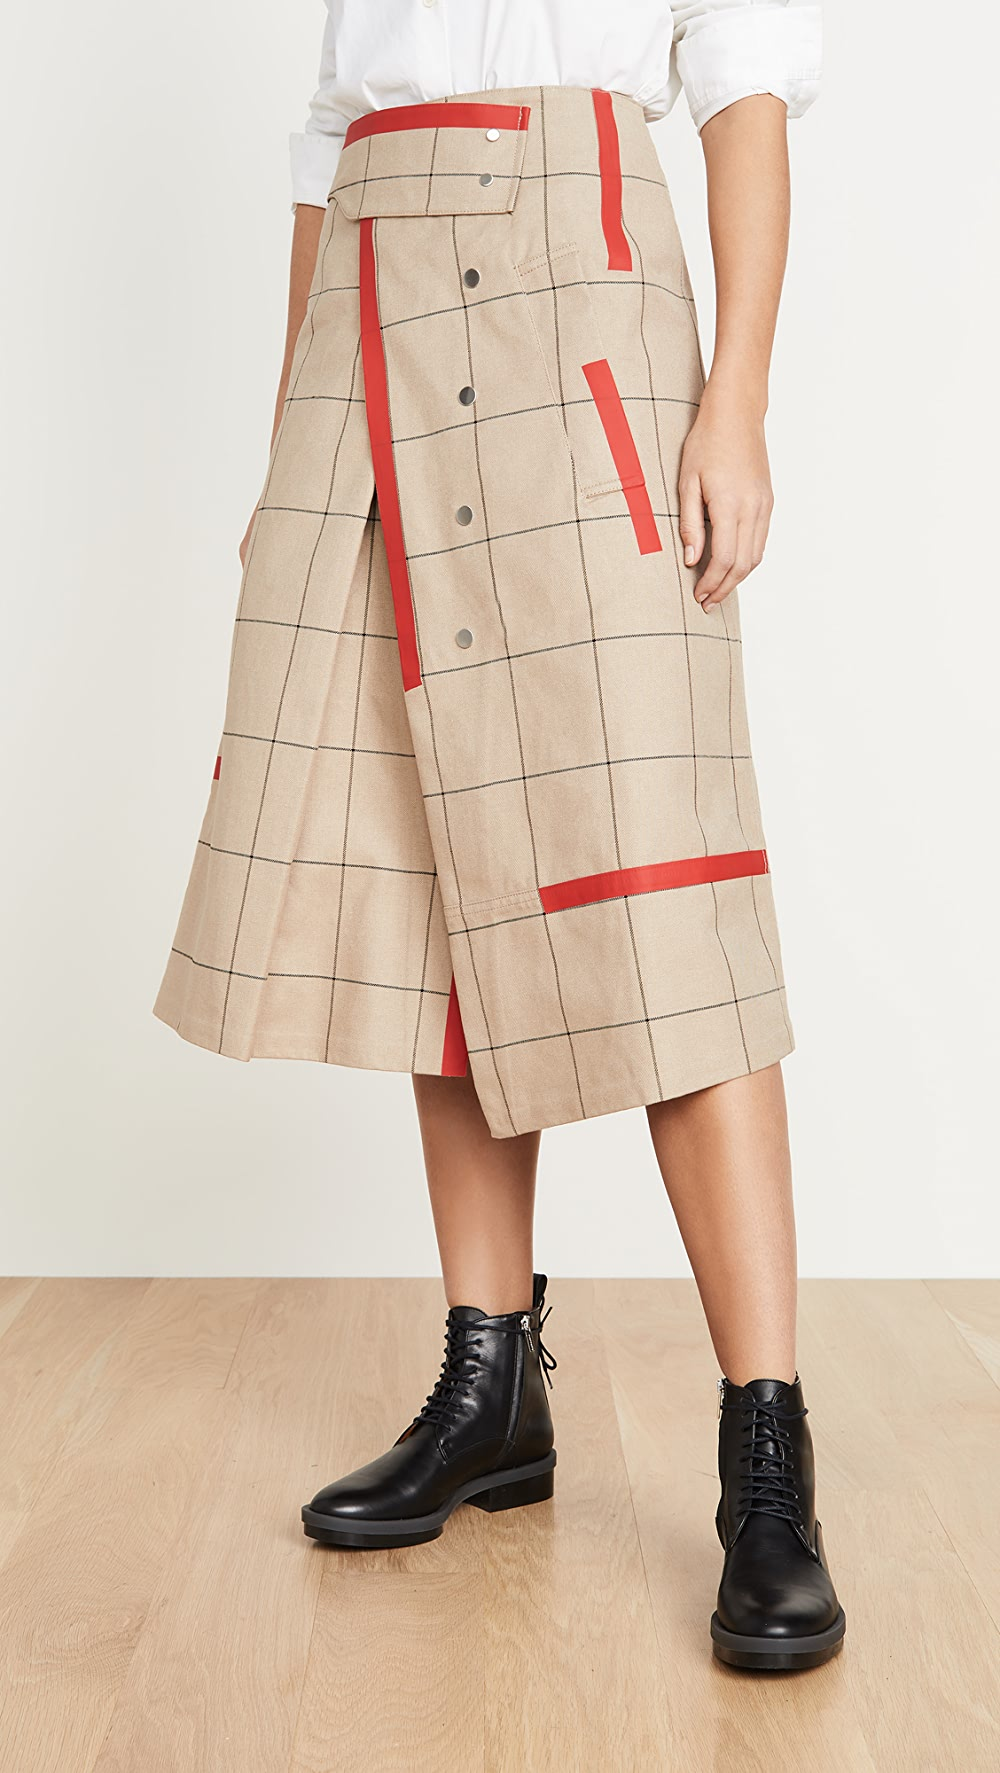 Aggressive 3.1 Phillip Lim - Window Pane Trench Skirt Products Hot Sale